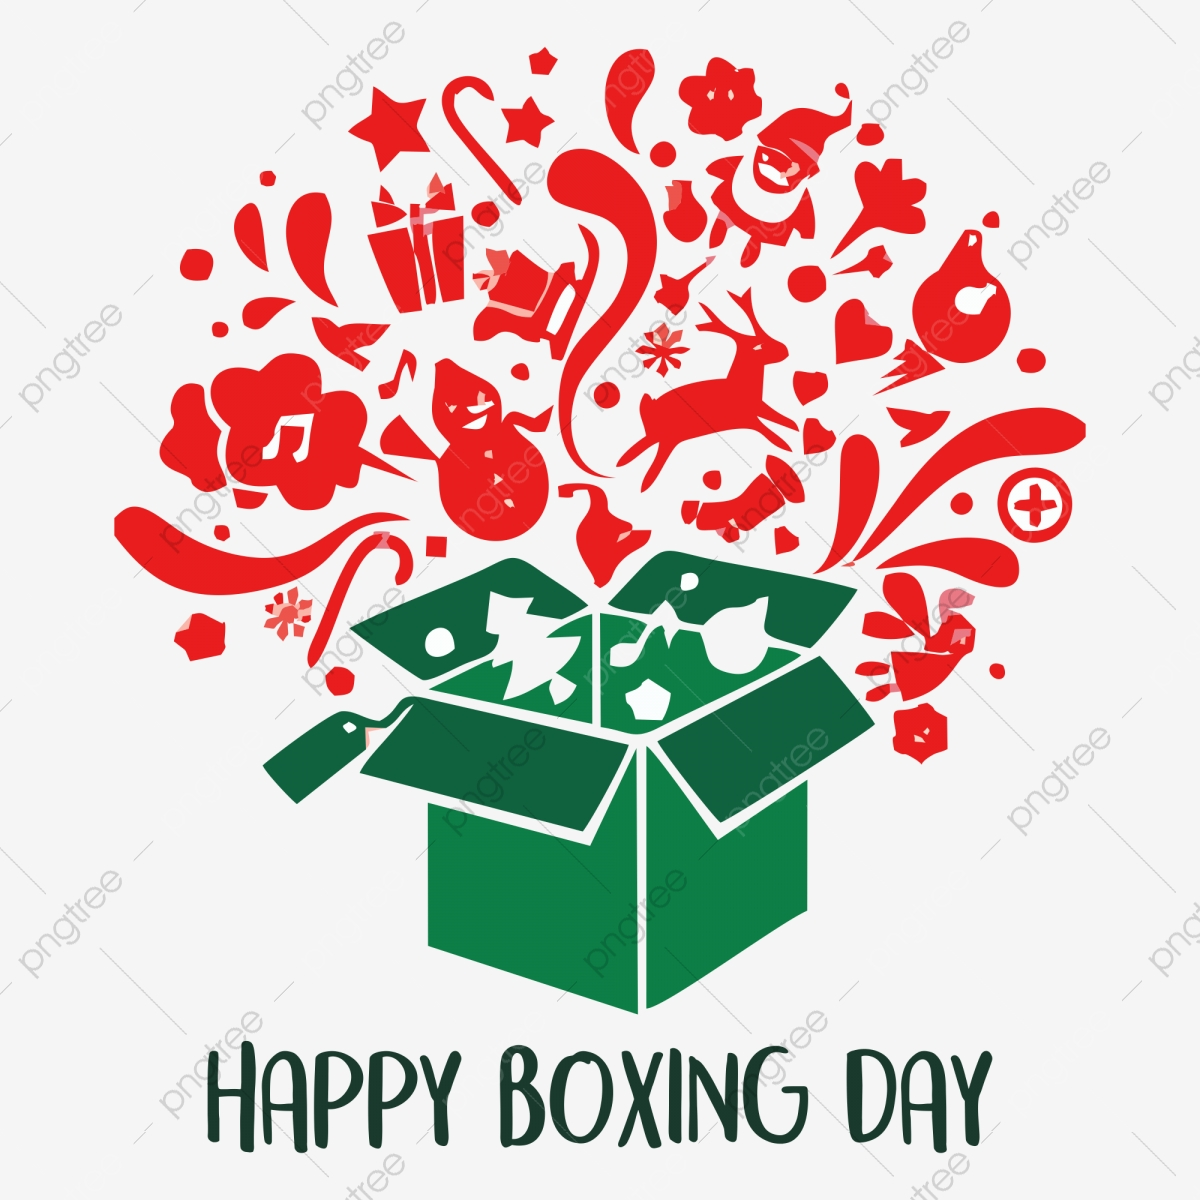 Happy Boxing Day, Christmas Day, Boxing Day PNG Transparent Image.